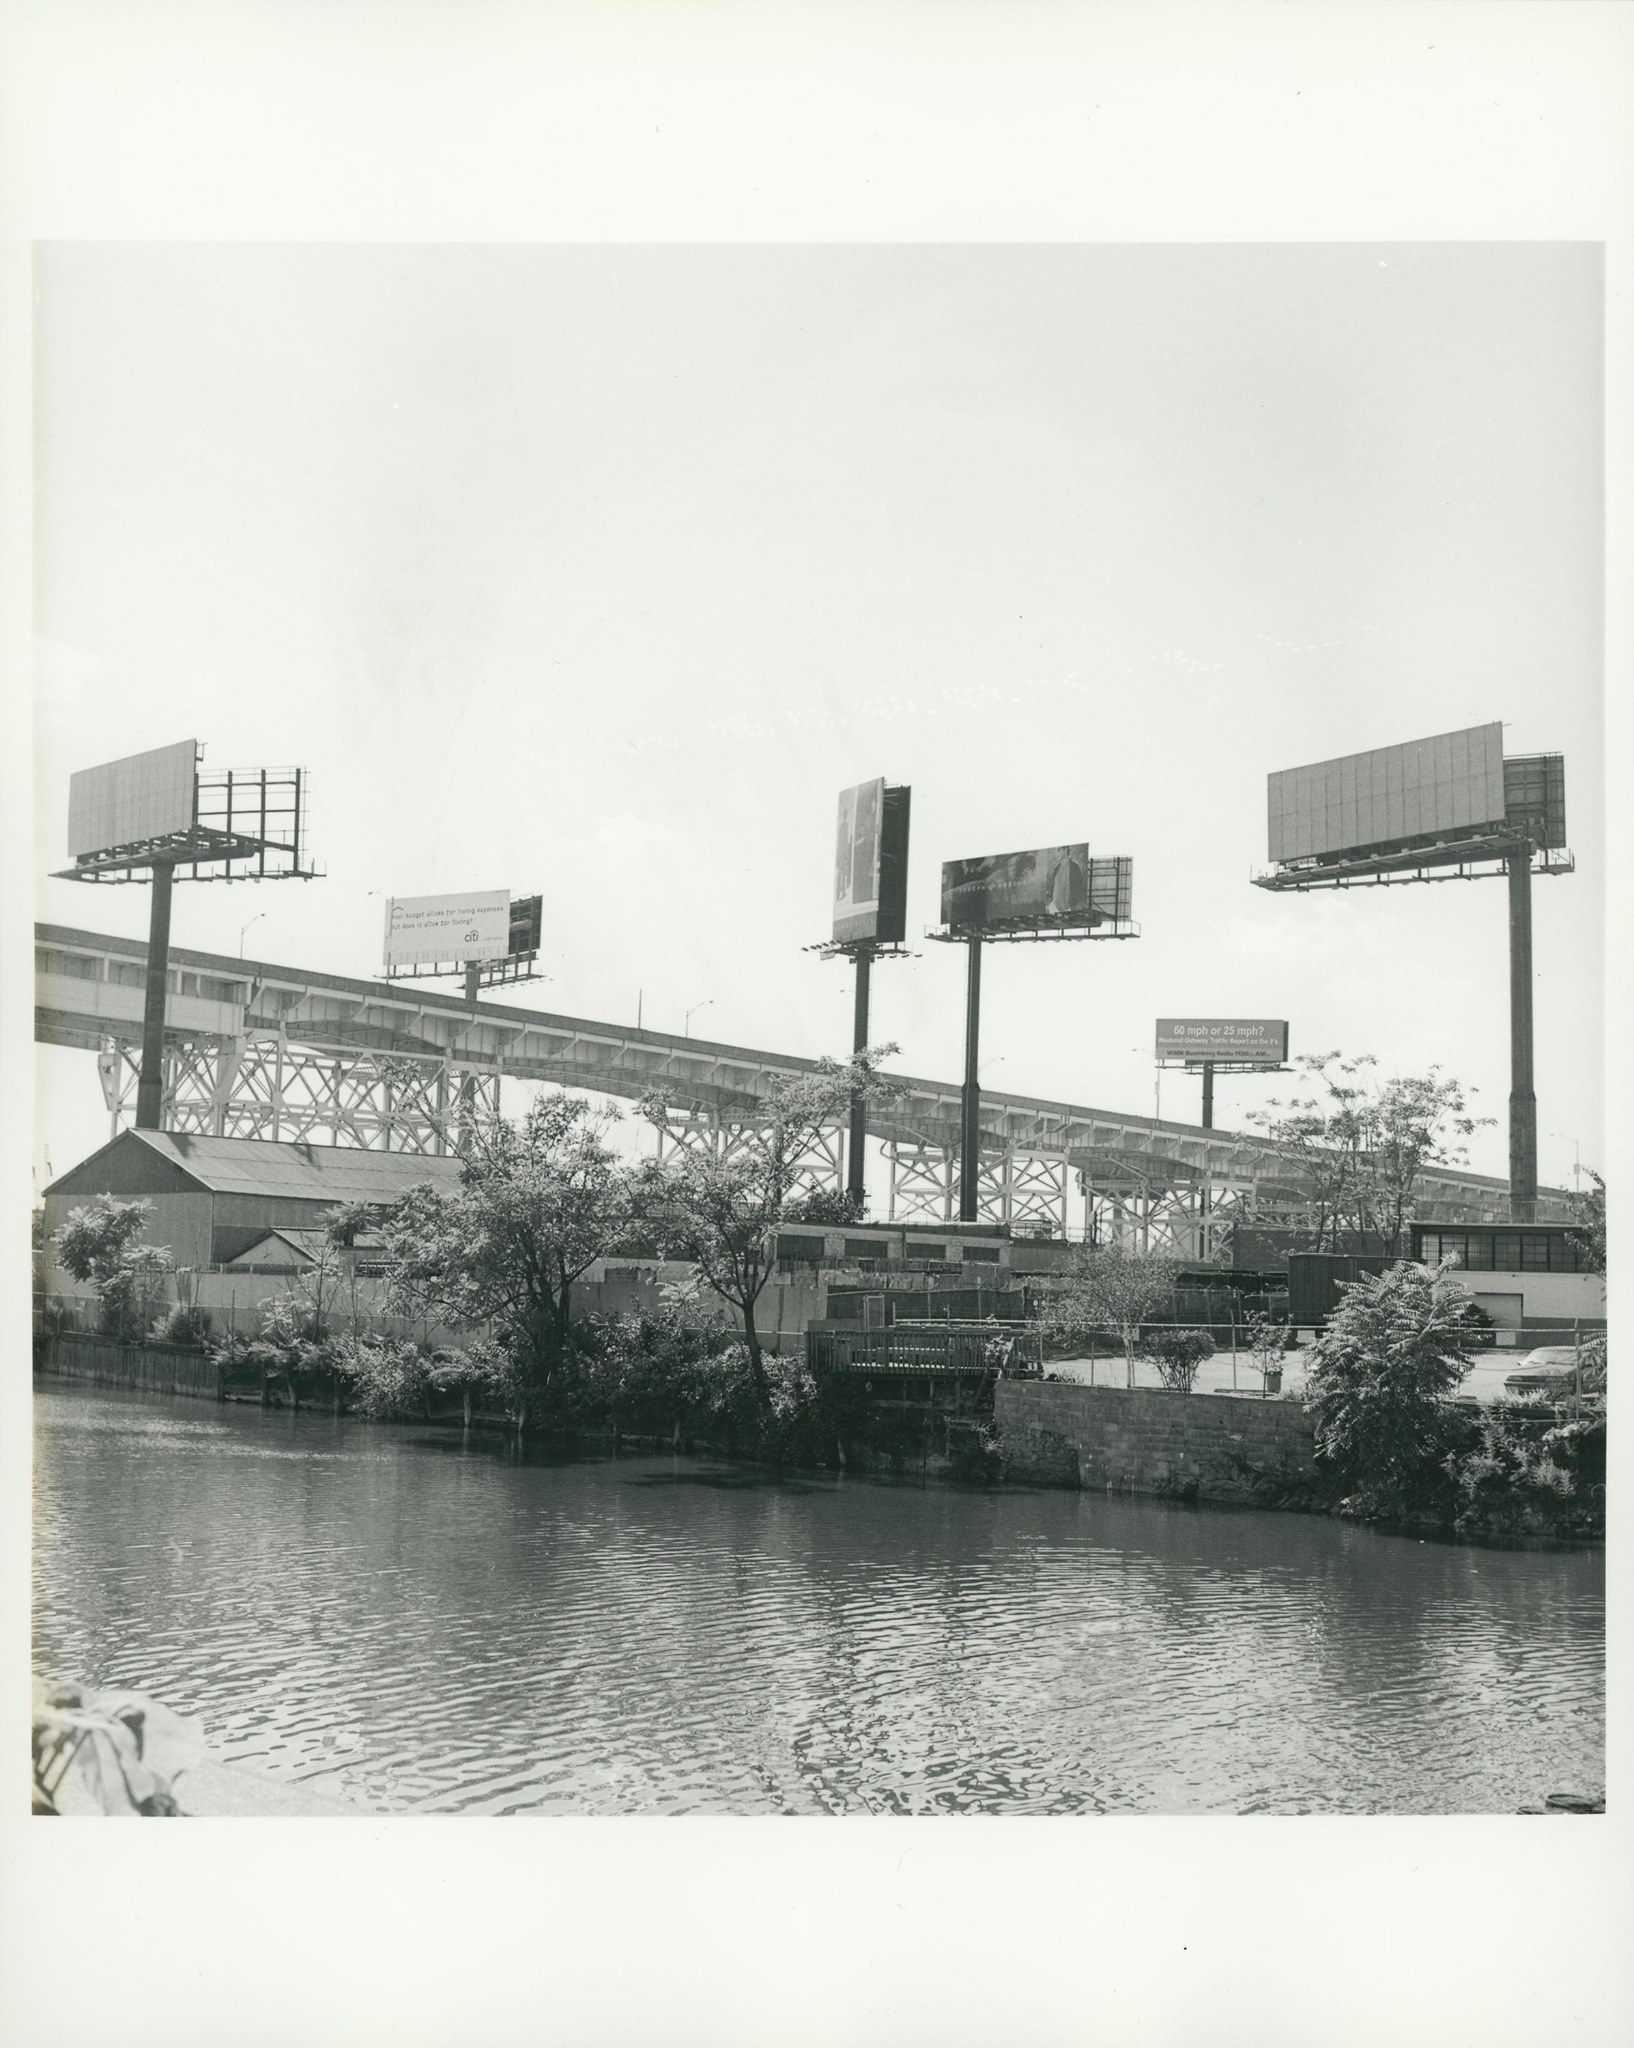 Anders Goldfarb, Dutch Kills looking South from Hunters Point Avenue Bridge, August 2001.